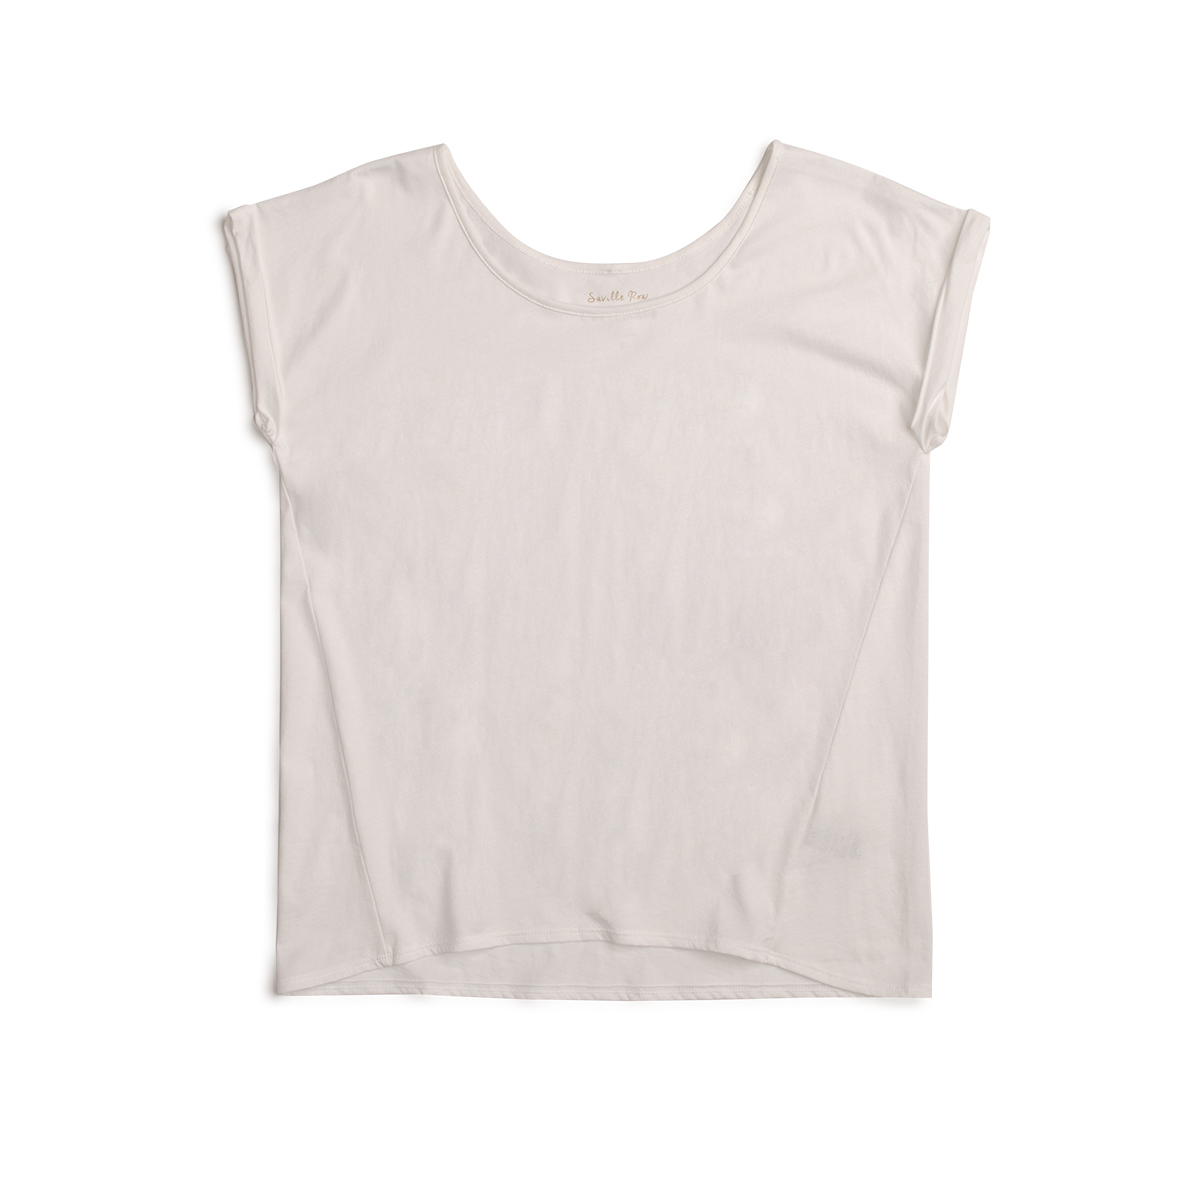 POLERA CUELLO RED M/C ANCHA BLANCO PIMA